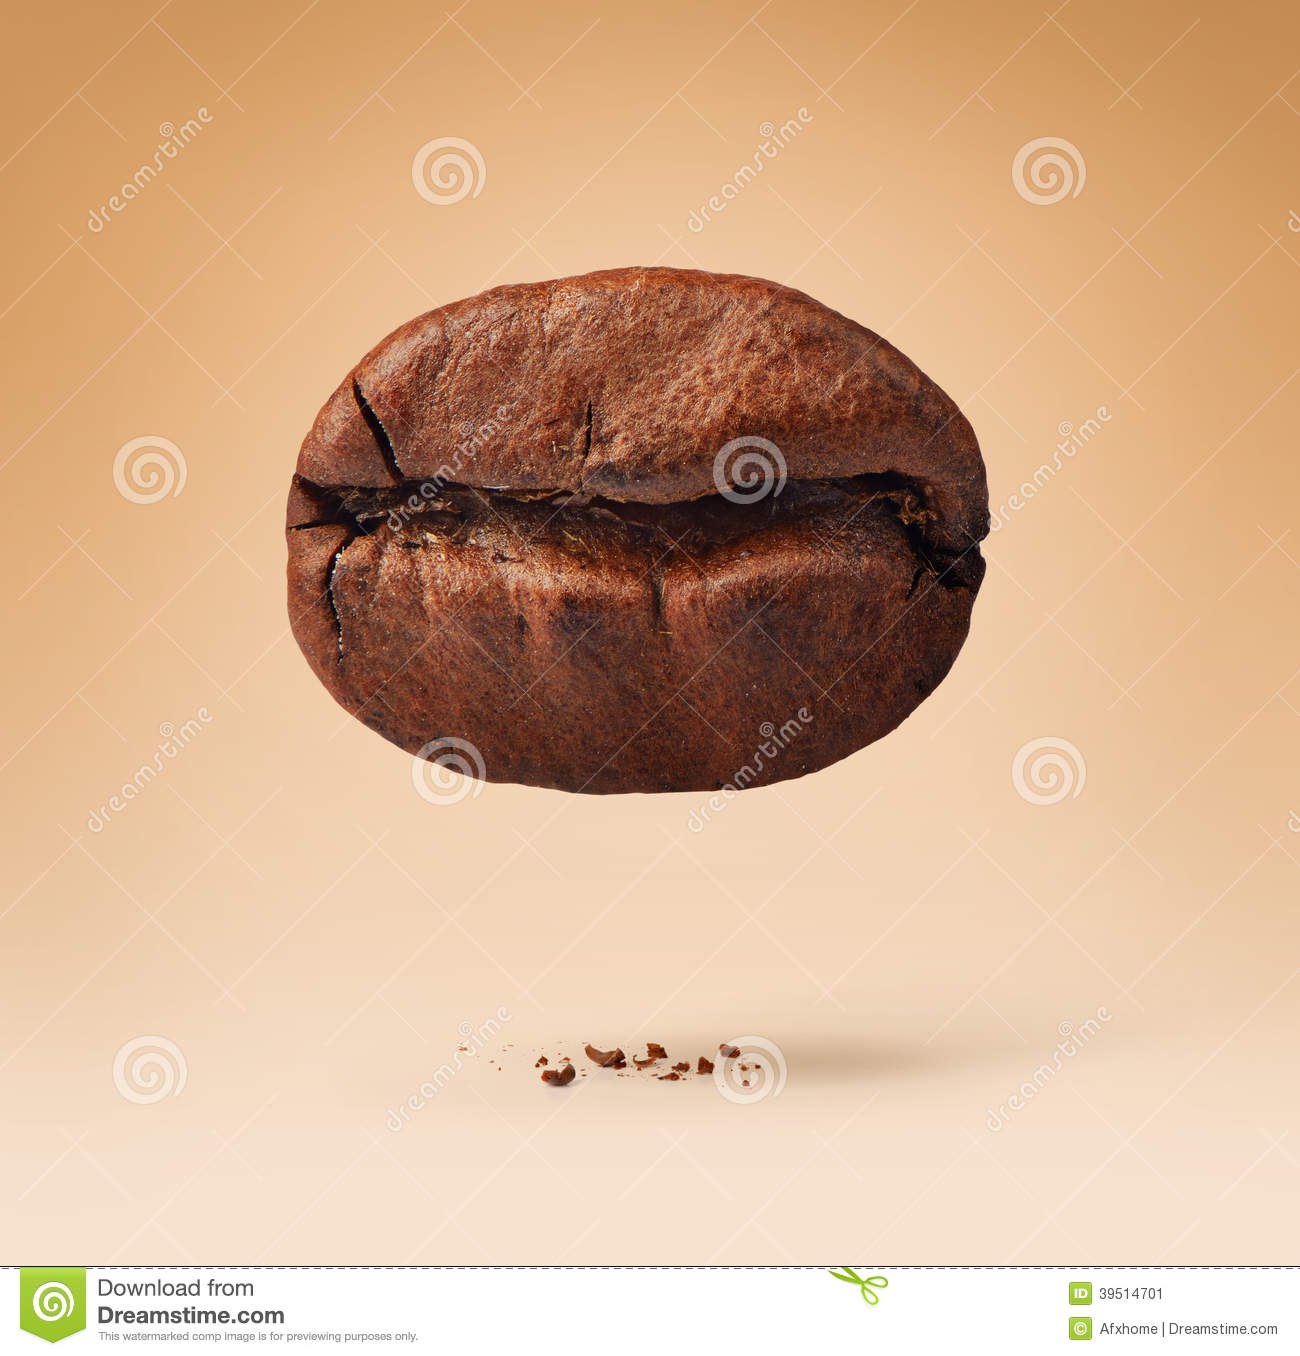 One coffee bean on background